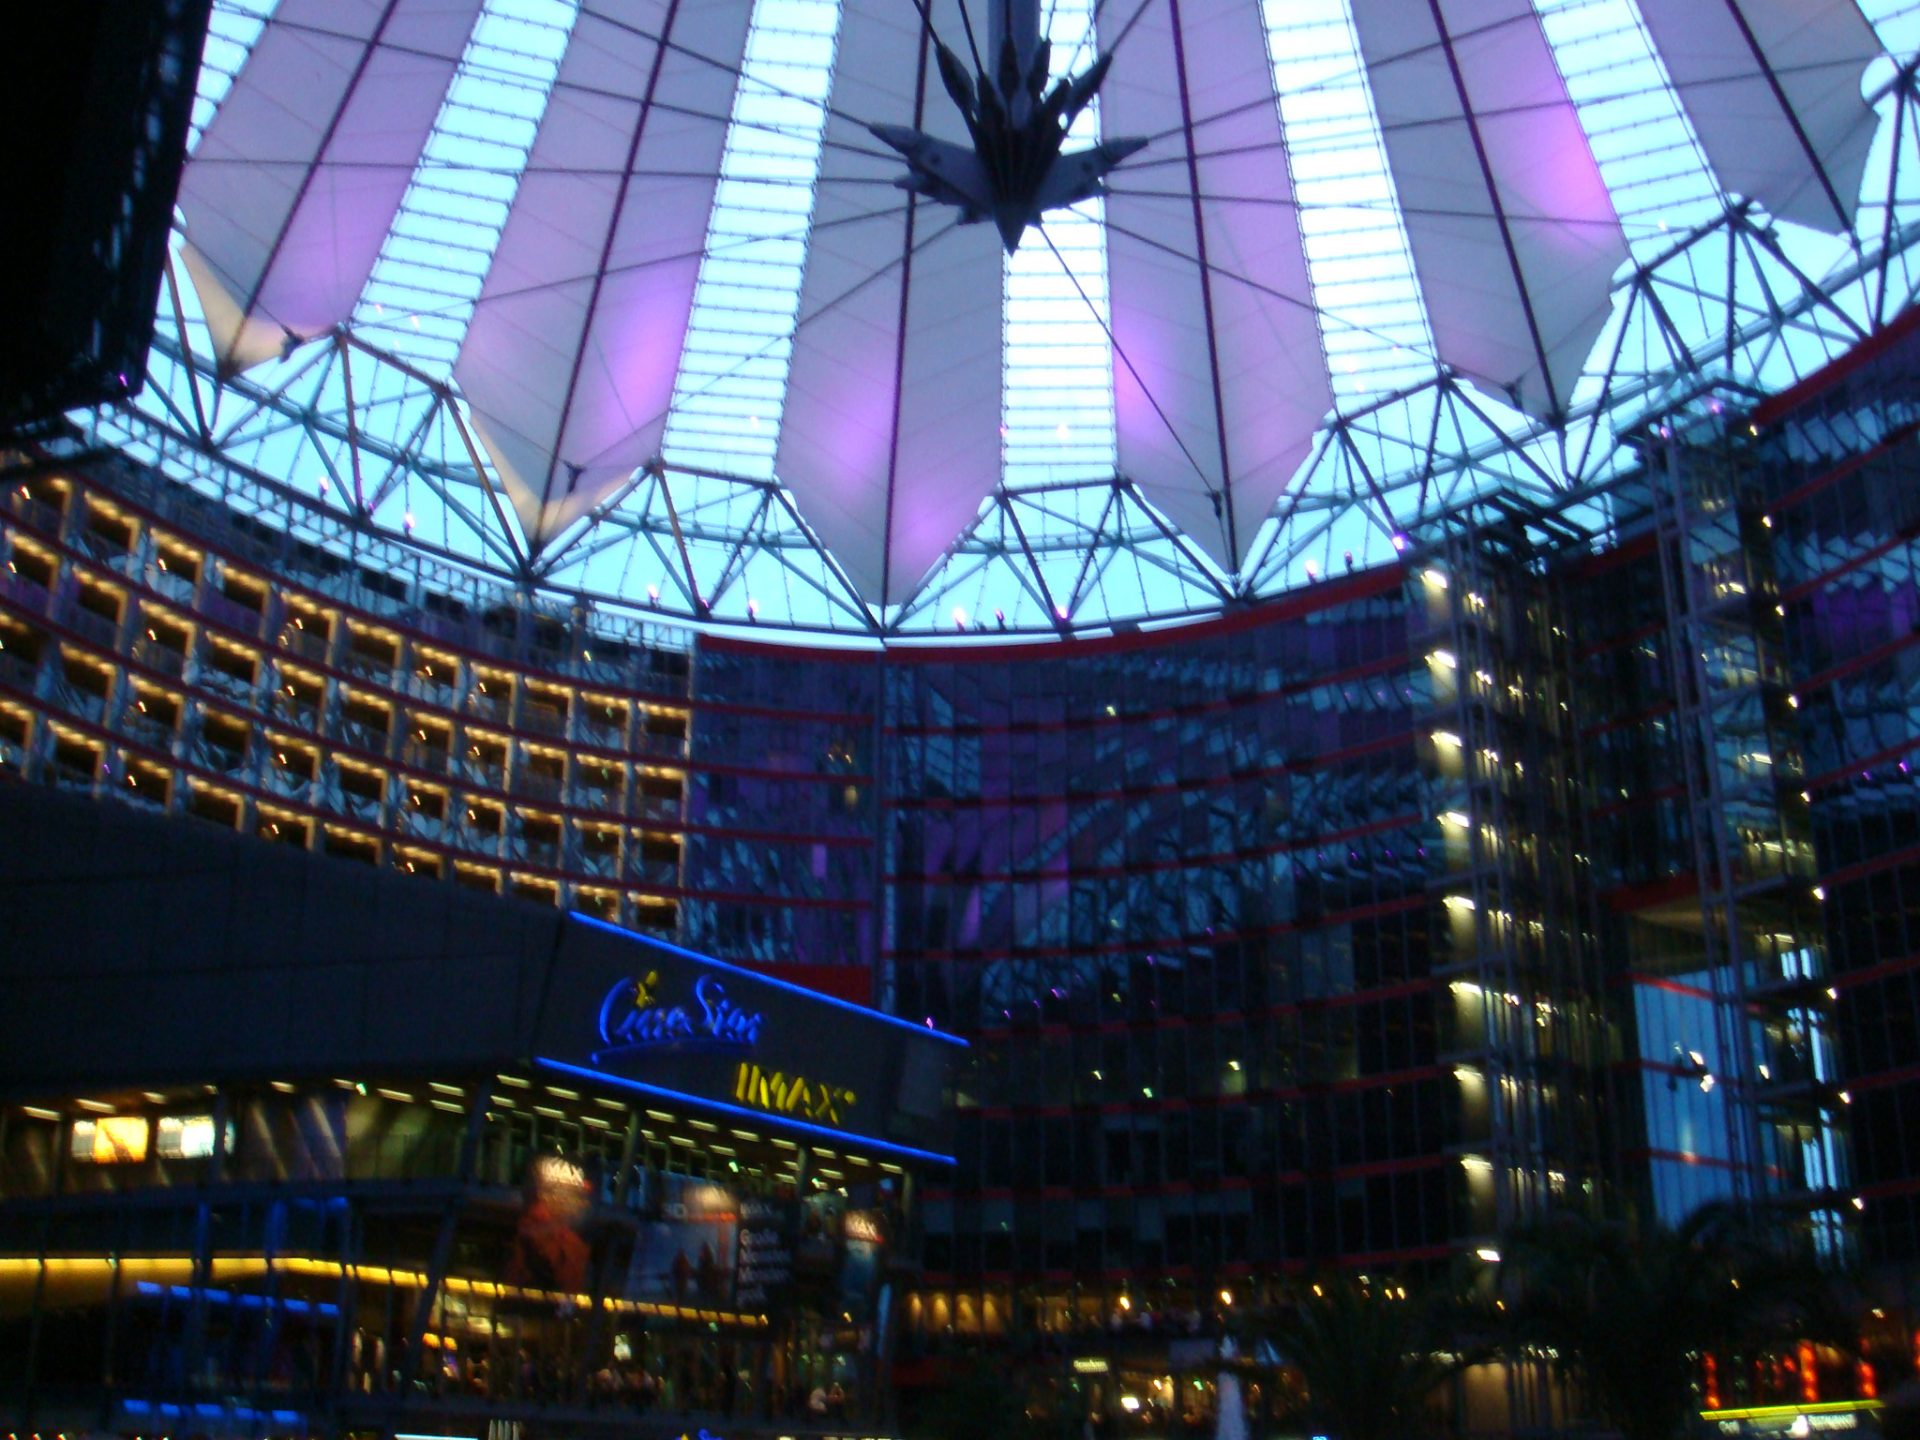 The Helmut Jahn designed Sony Center - site of the Star Trek cinema